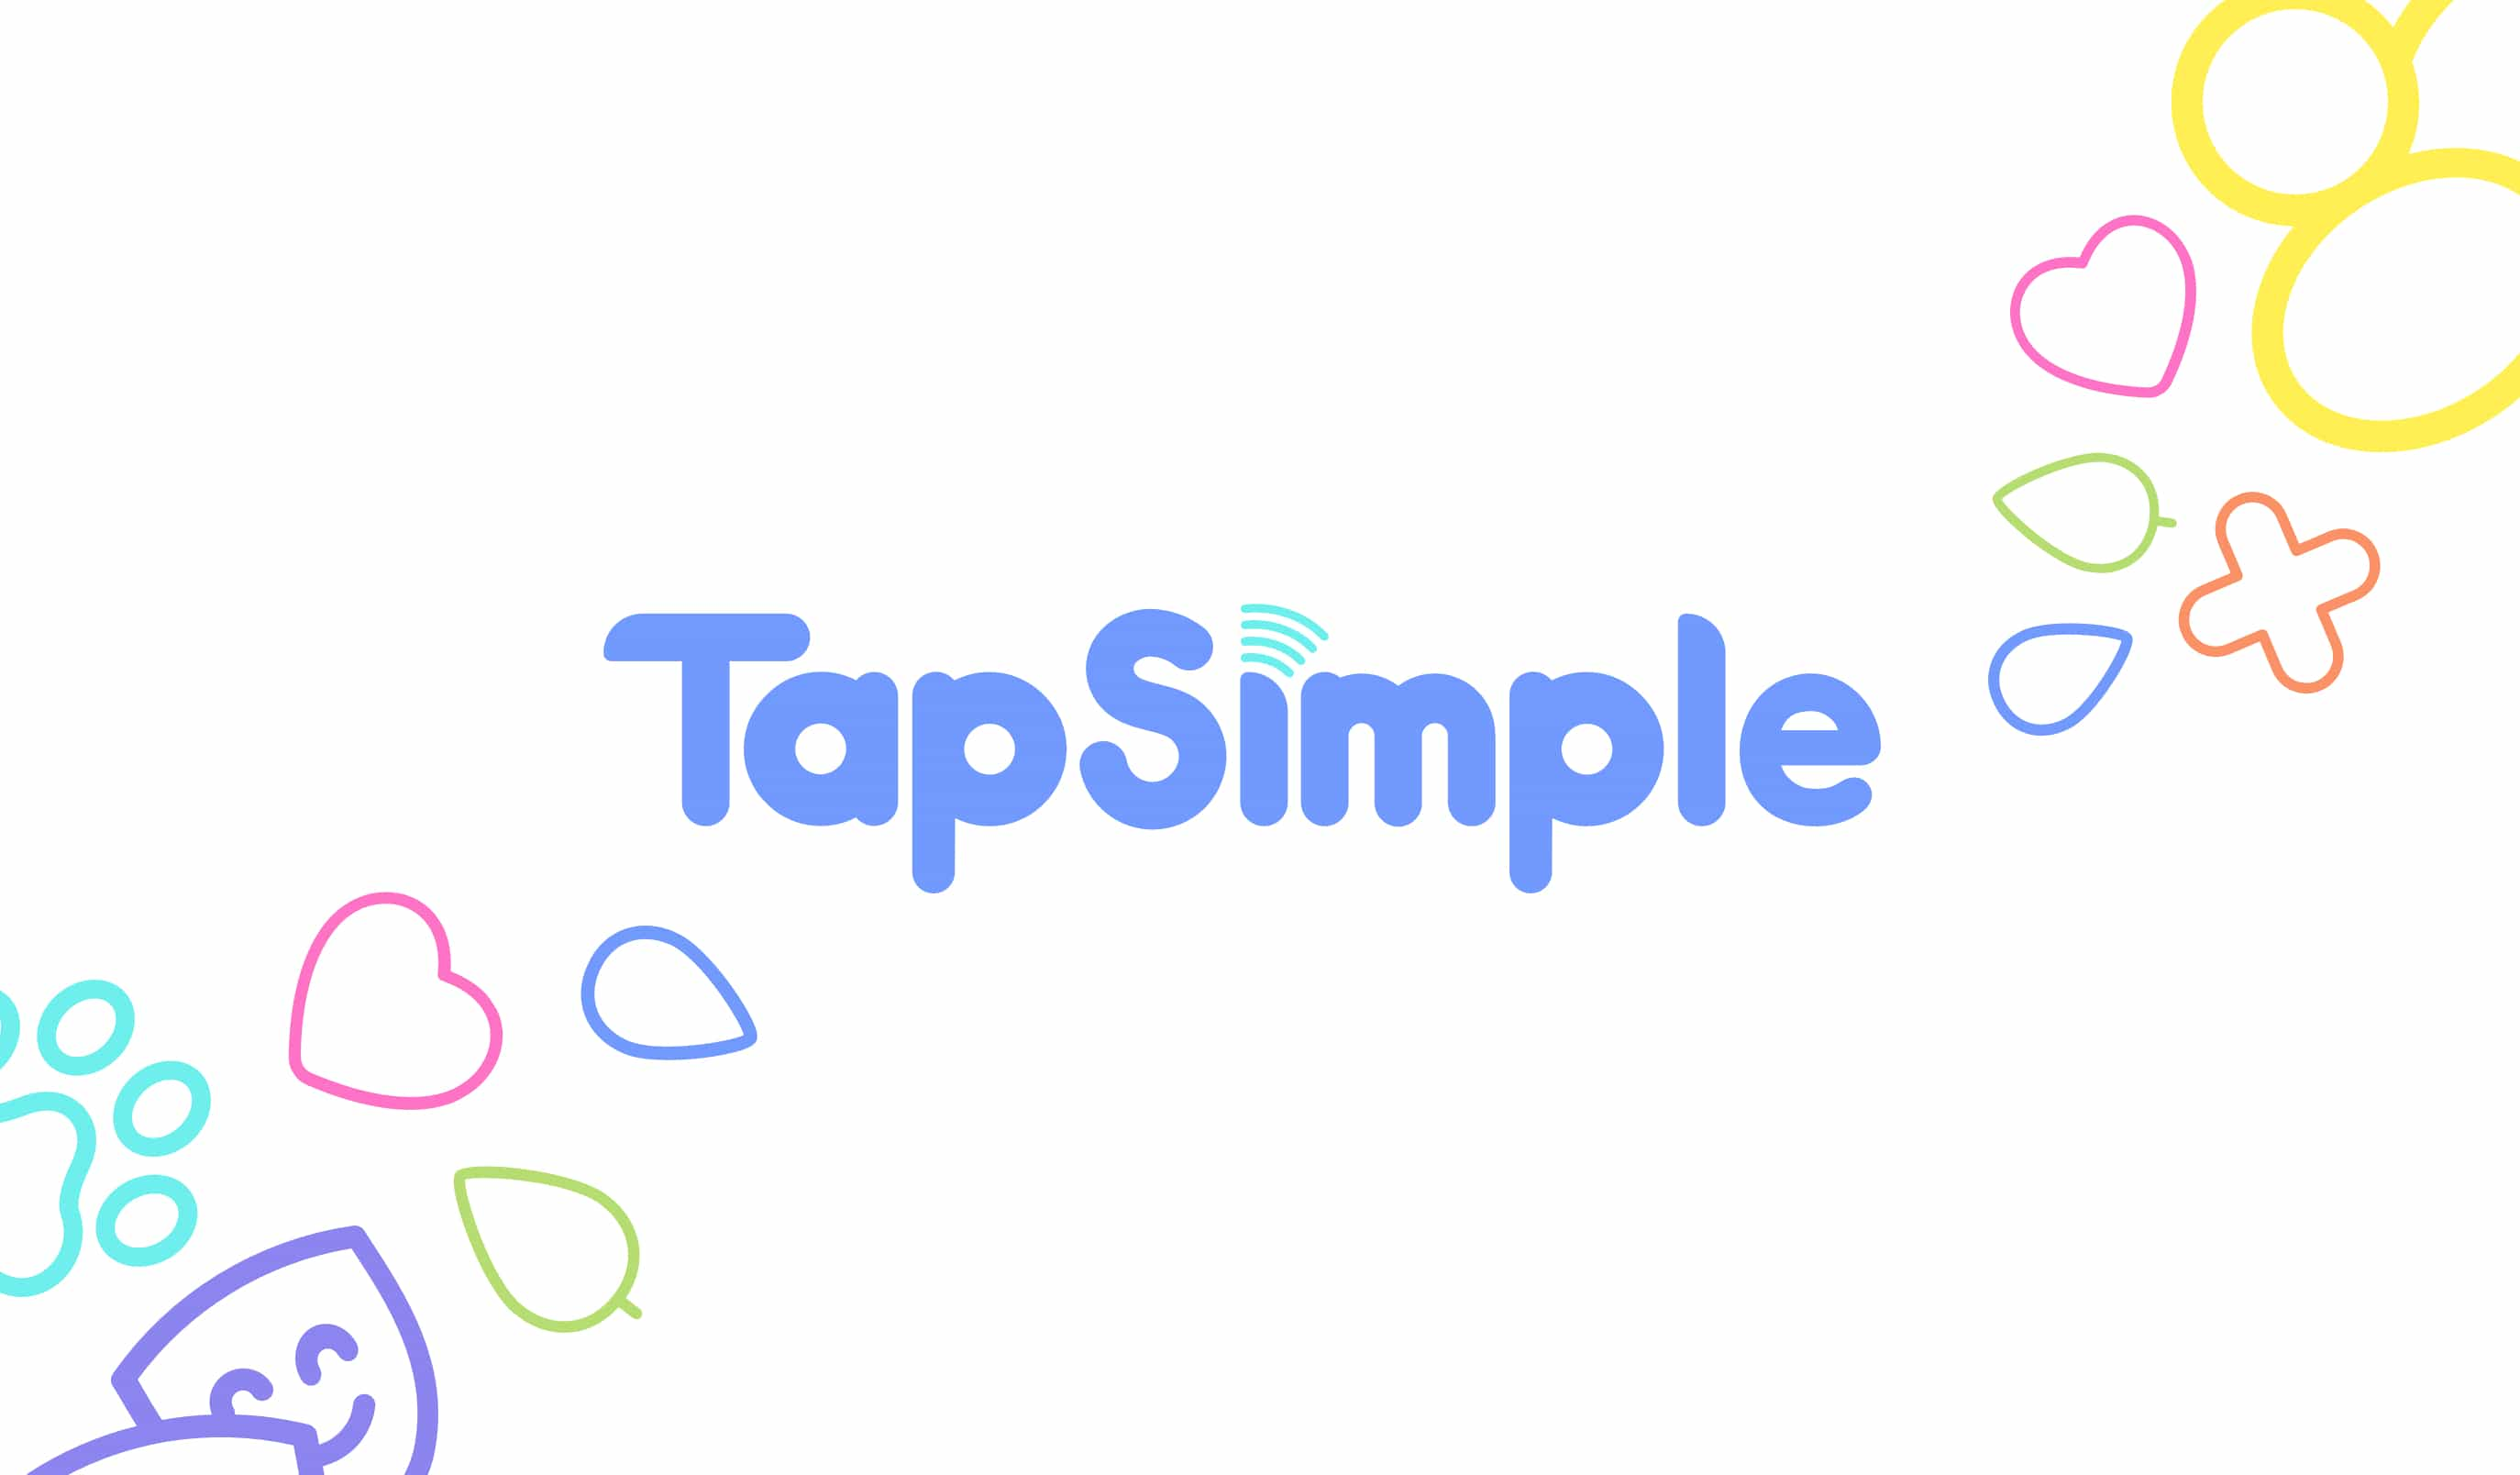 The TapSimple branding scene, logo with background icons